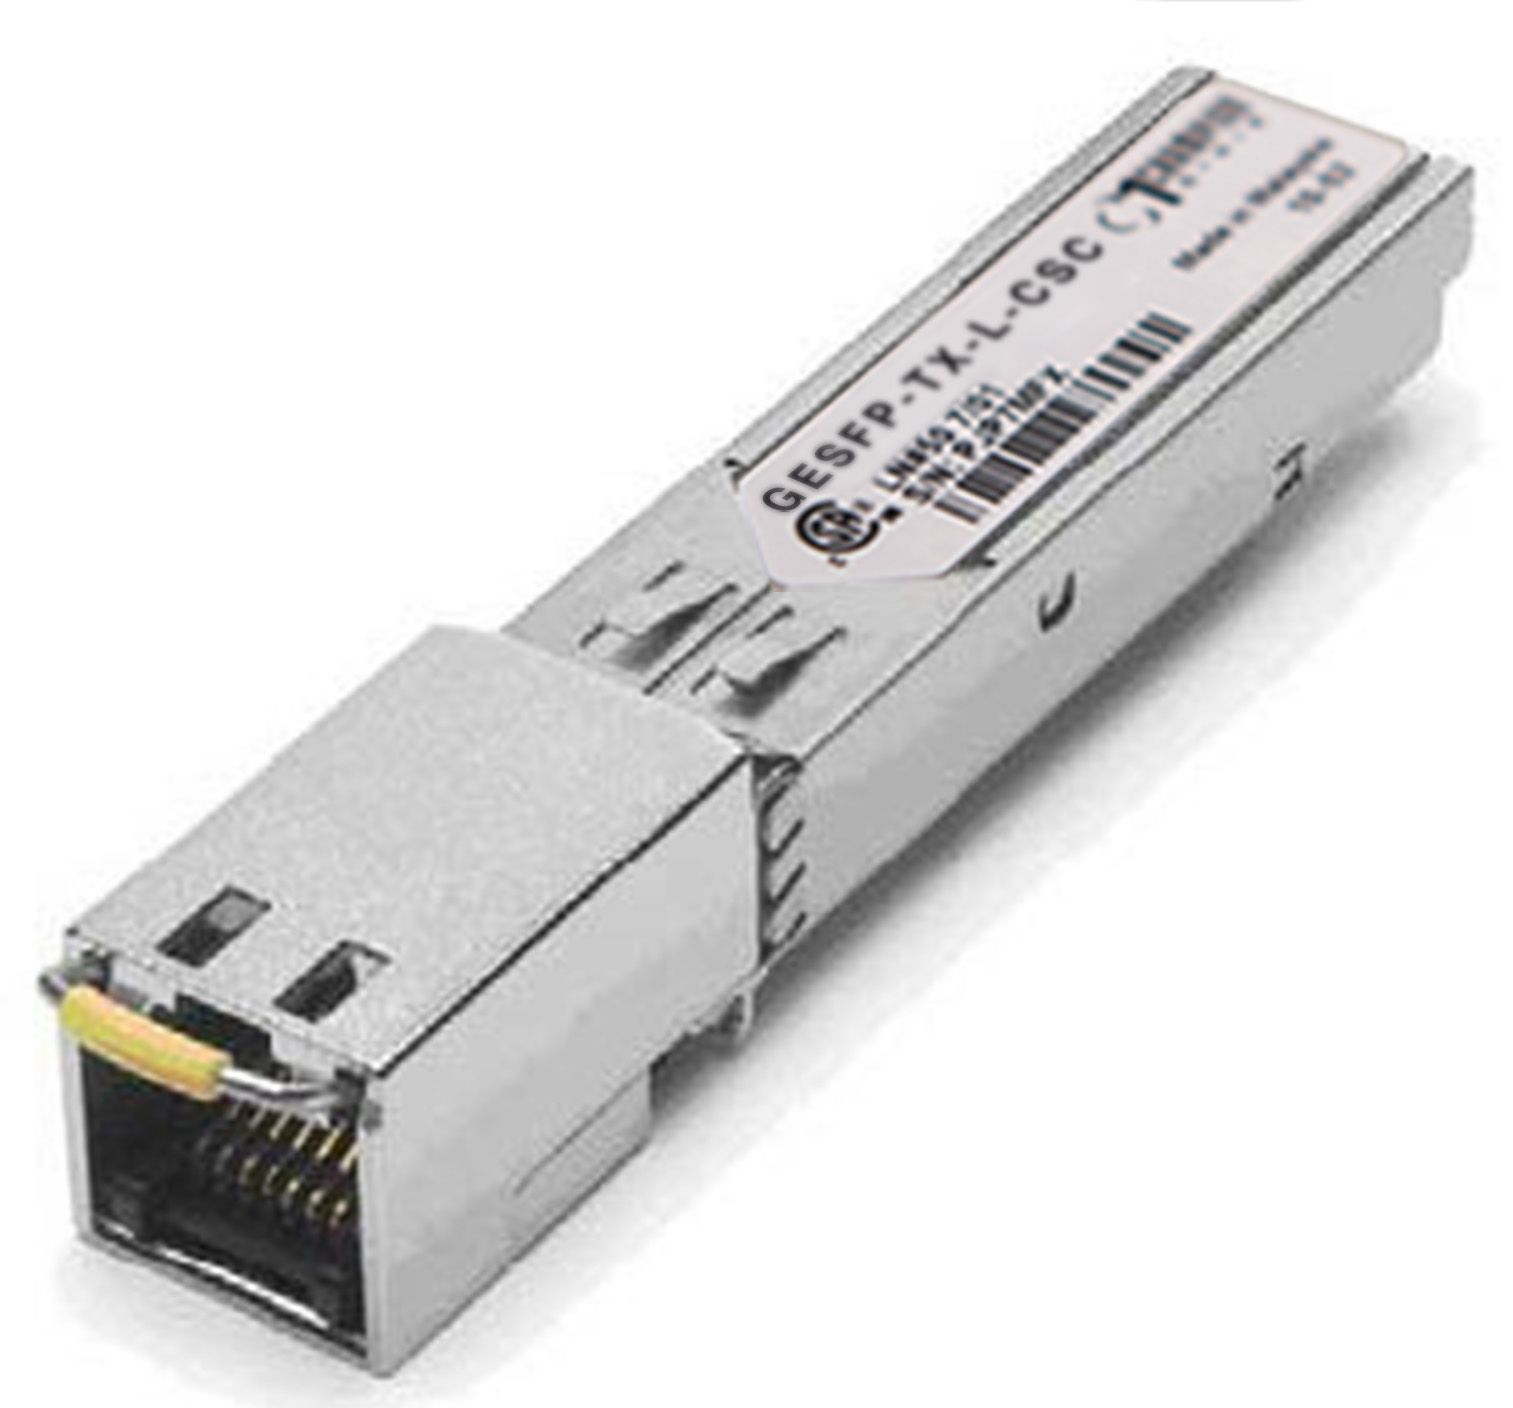 SFP 1000Base-T 100m Transceiver, Cisco Systems compatible, with Tx_disable, LOS Support